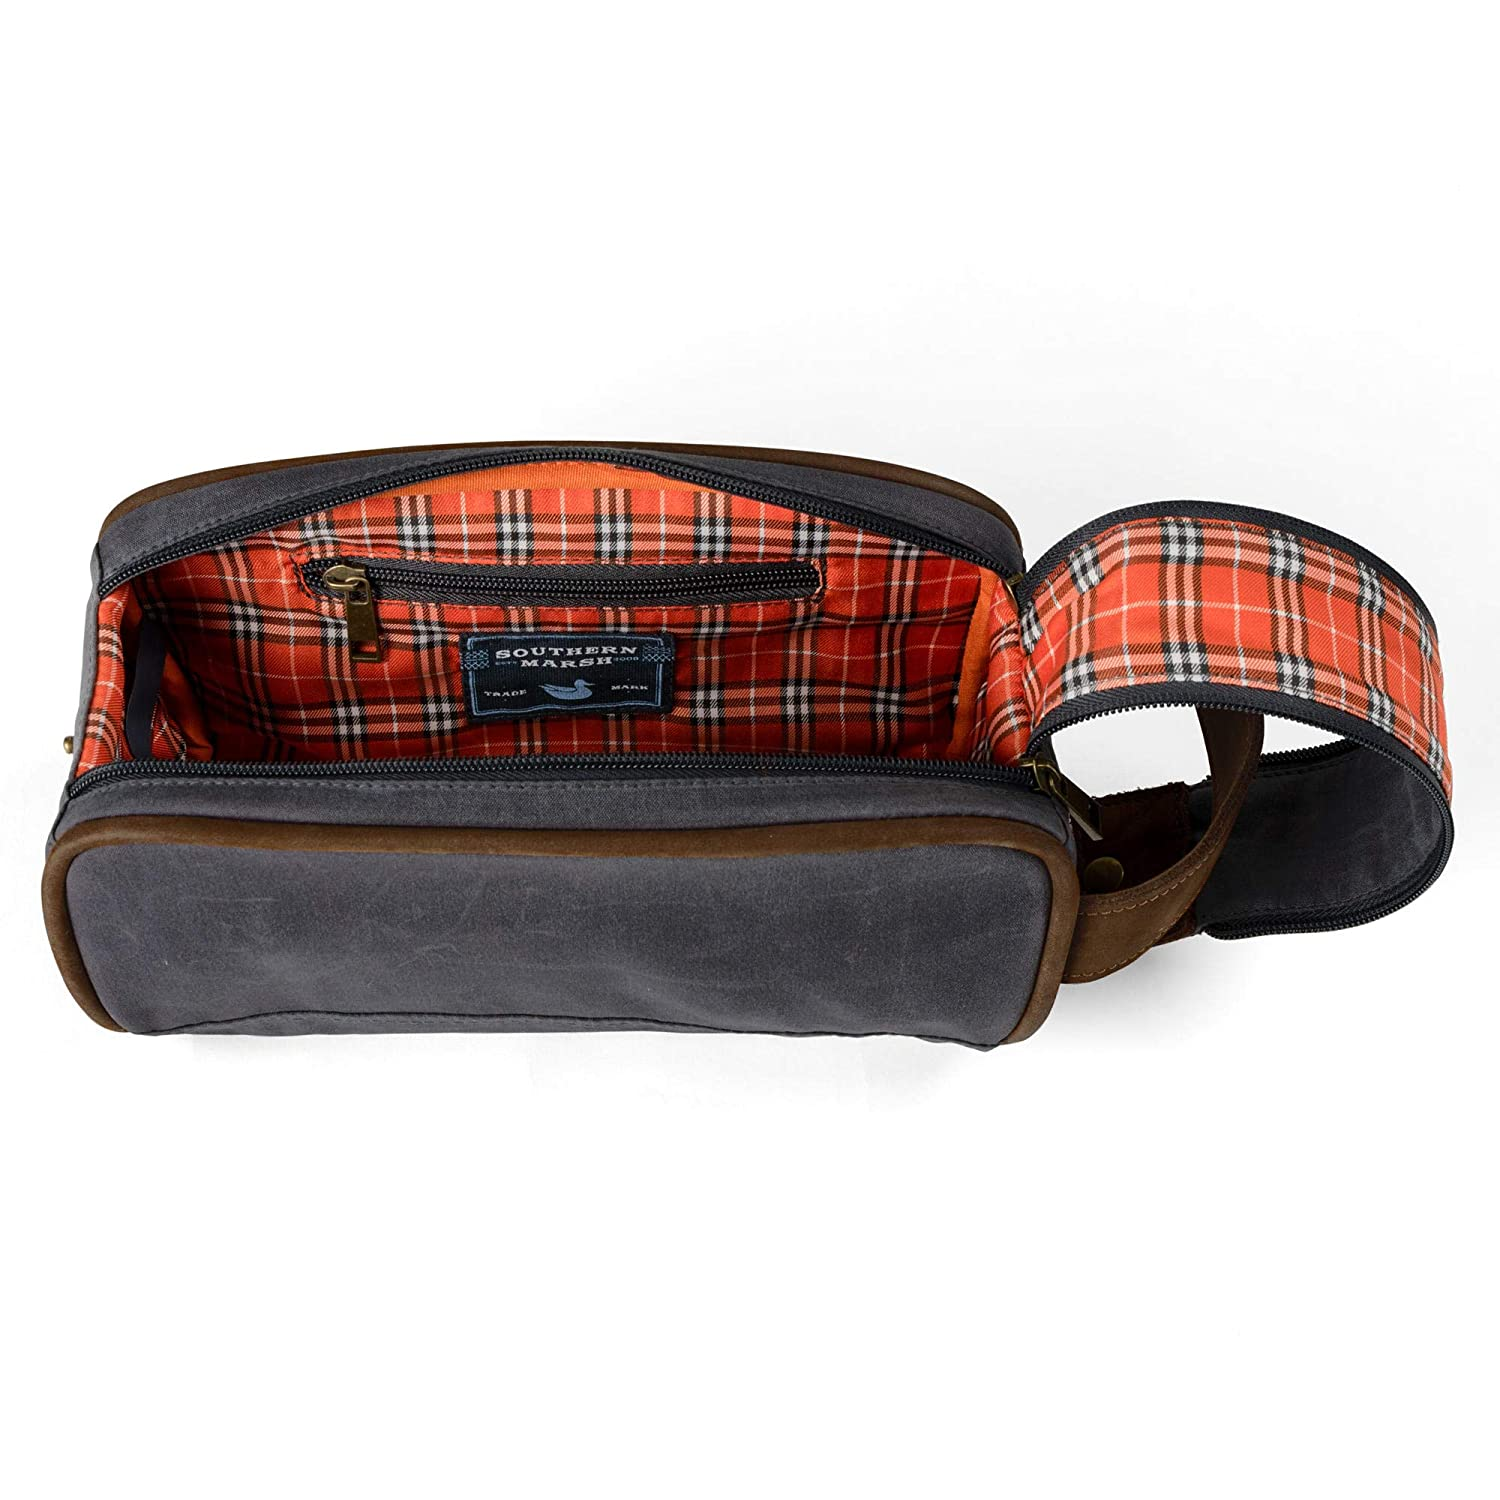 Southern Marsh Dewberry Waxed Travel Kit-Navy